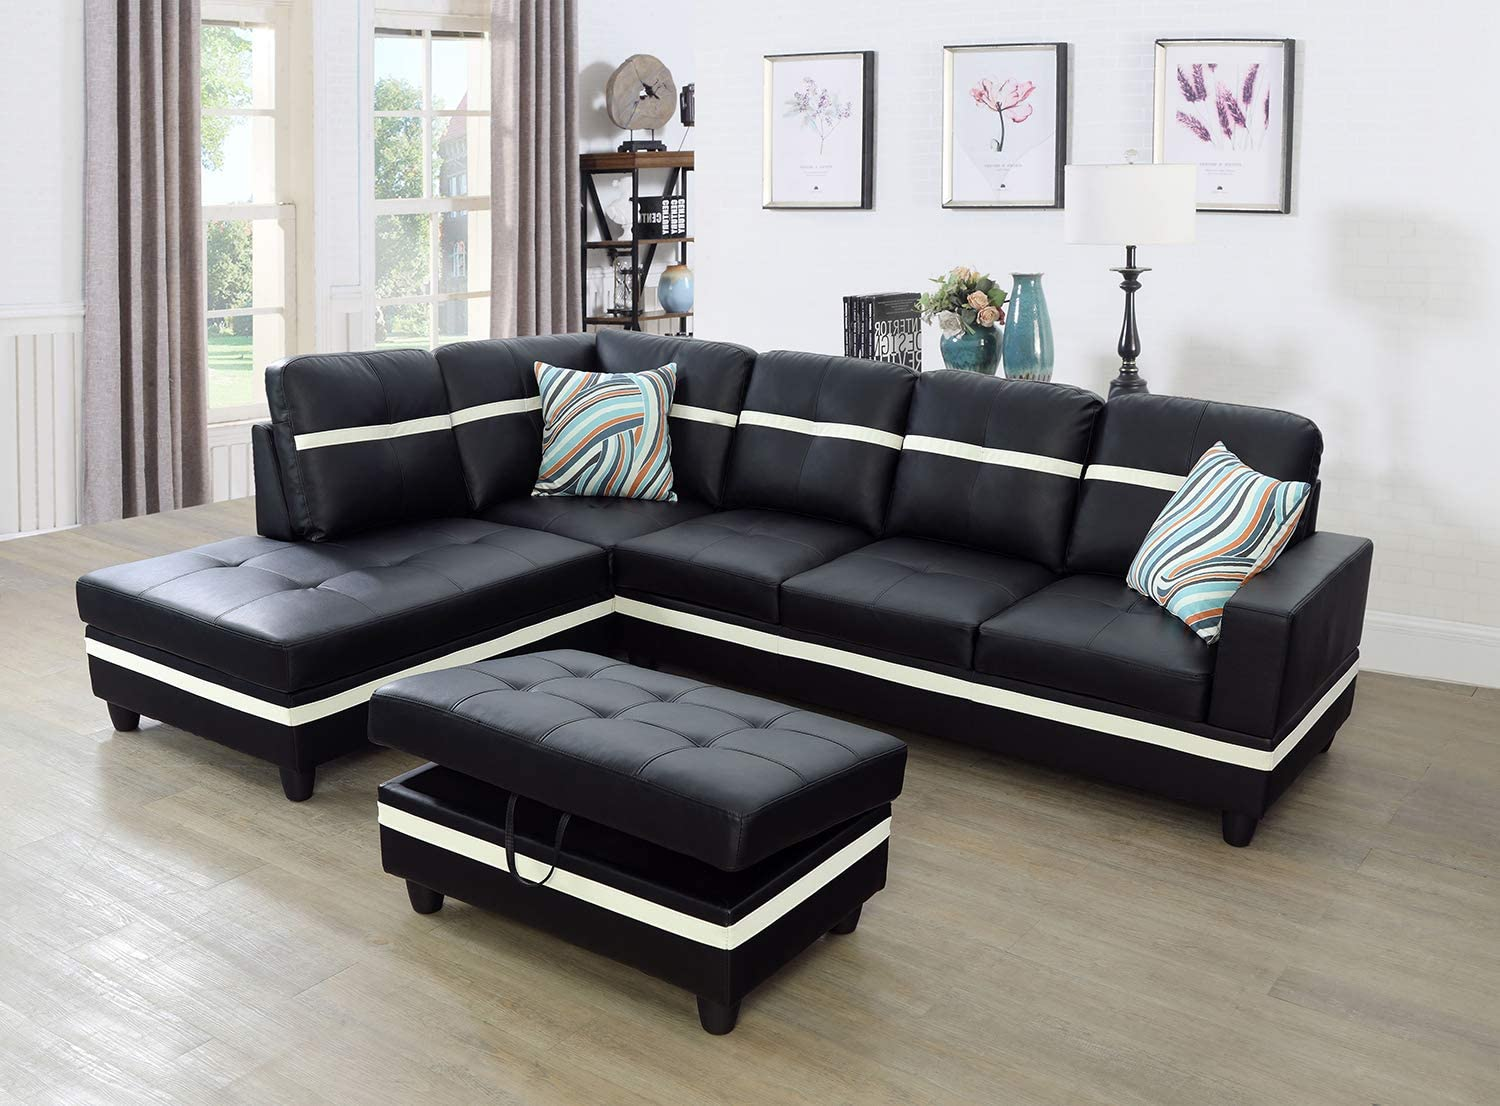 Lifestyle Furniture Left Facing 3pc Sectional Sofa Set With Storage Ottoman Faux Leather Black Furniture Decor